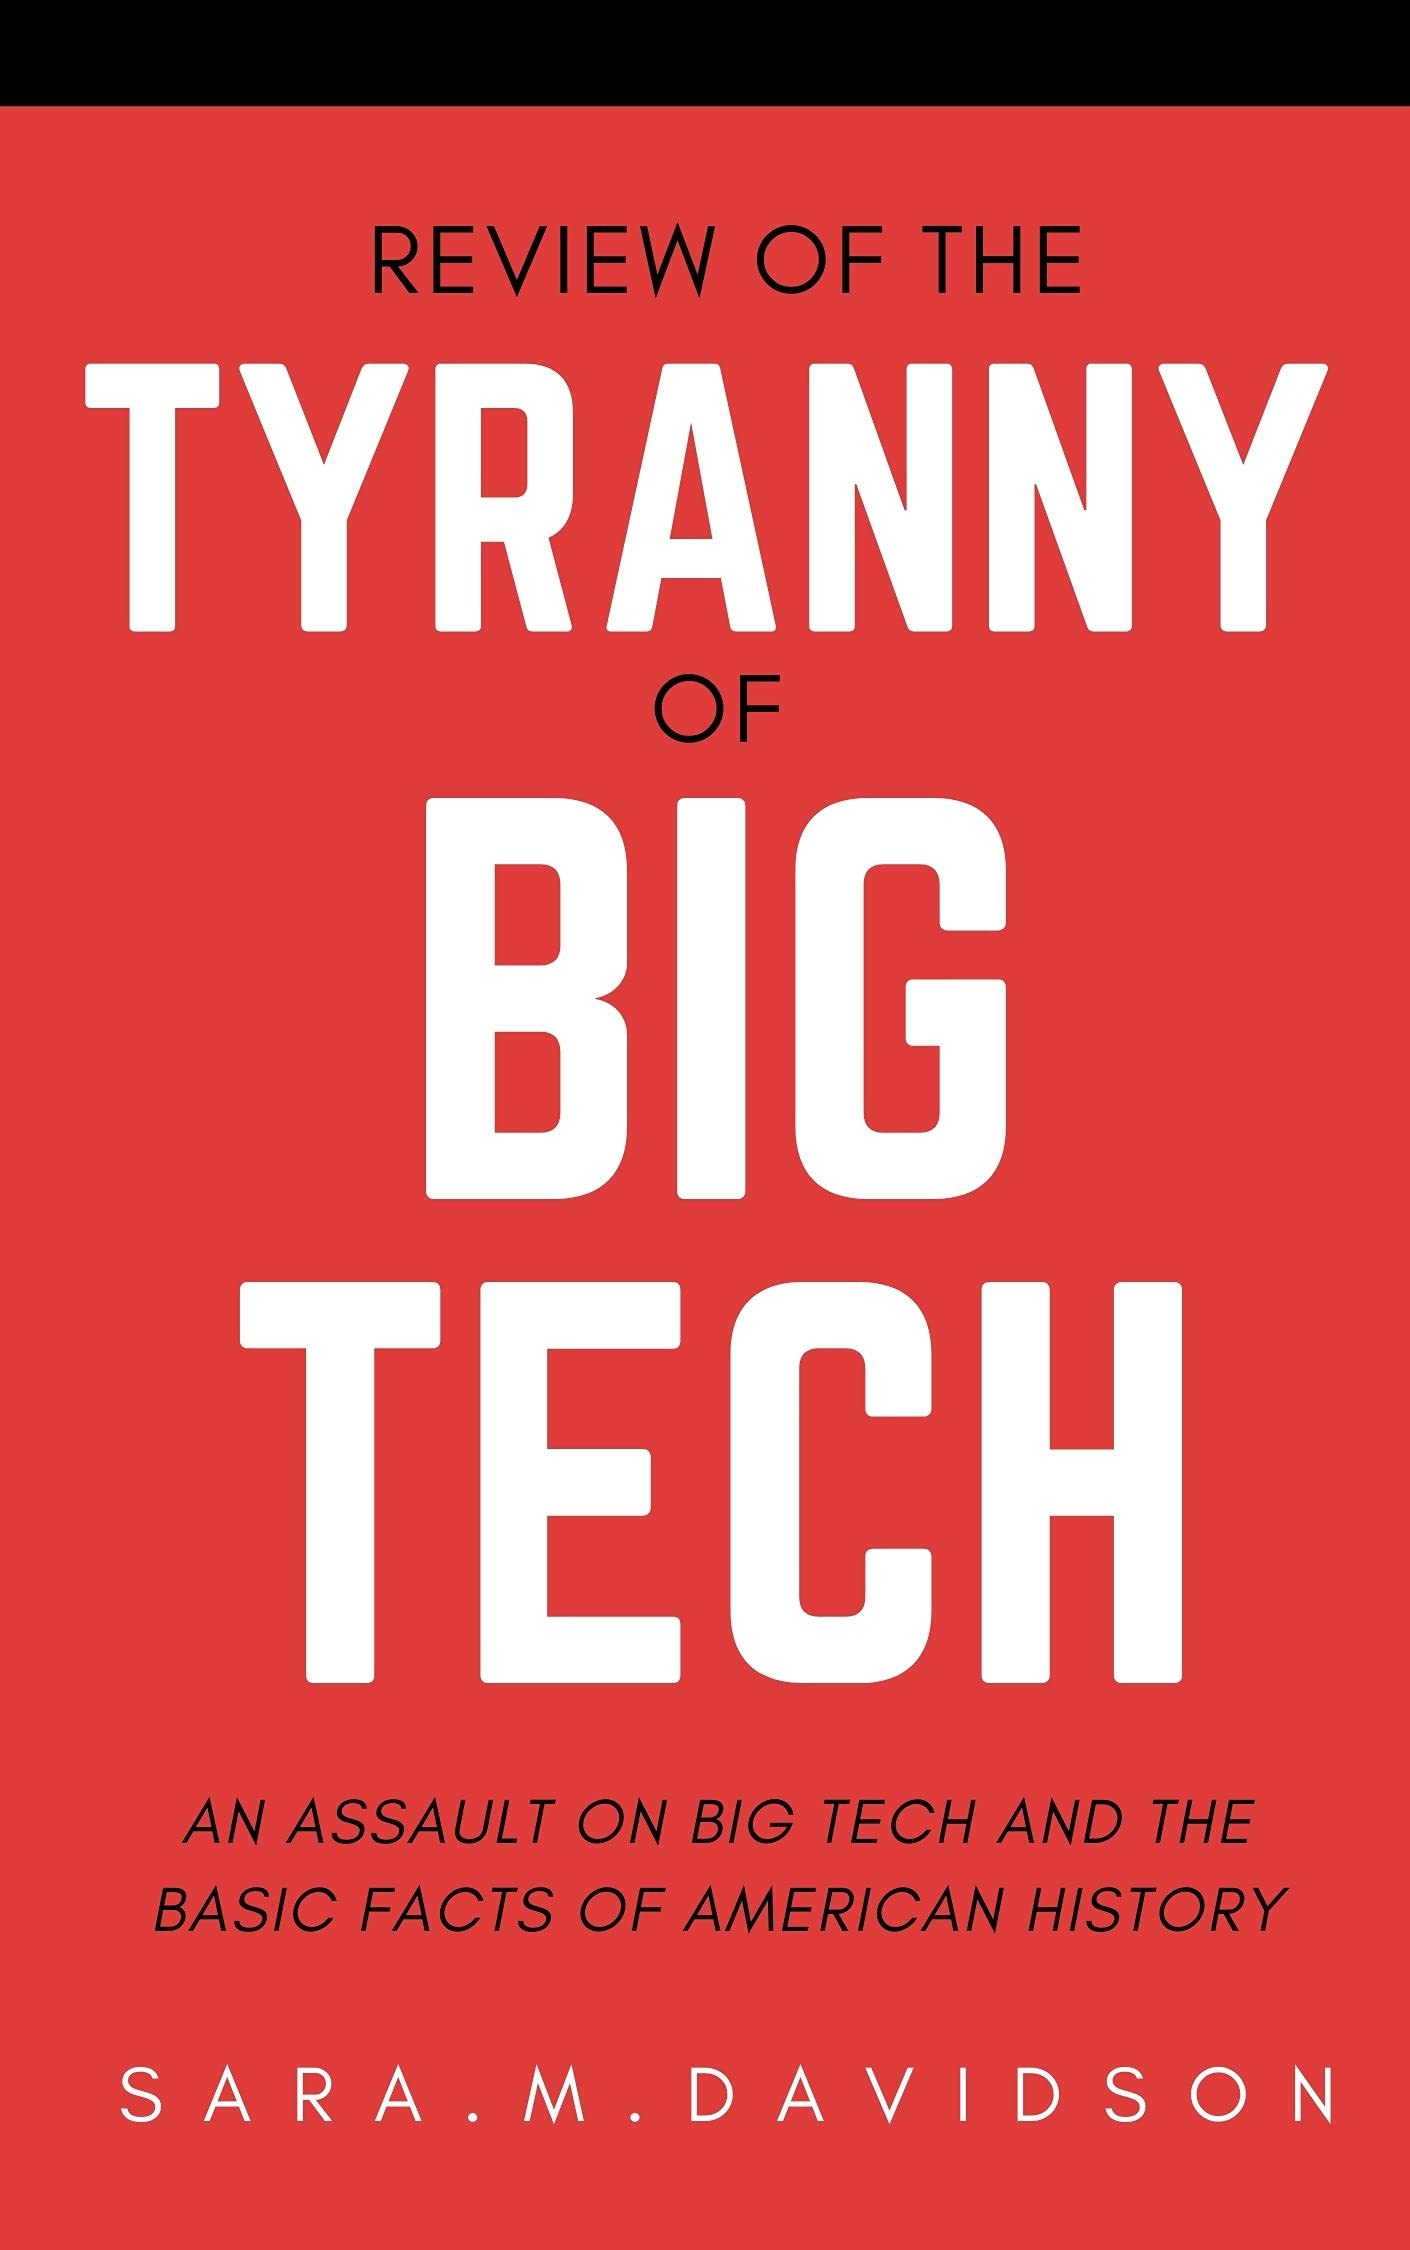 Review of the Tyranny of Big Tech: An Assault on: Big Tech and the Basic Facts of American History